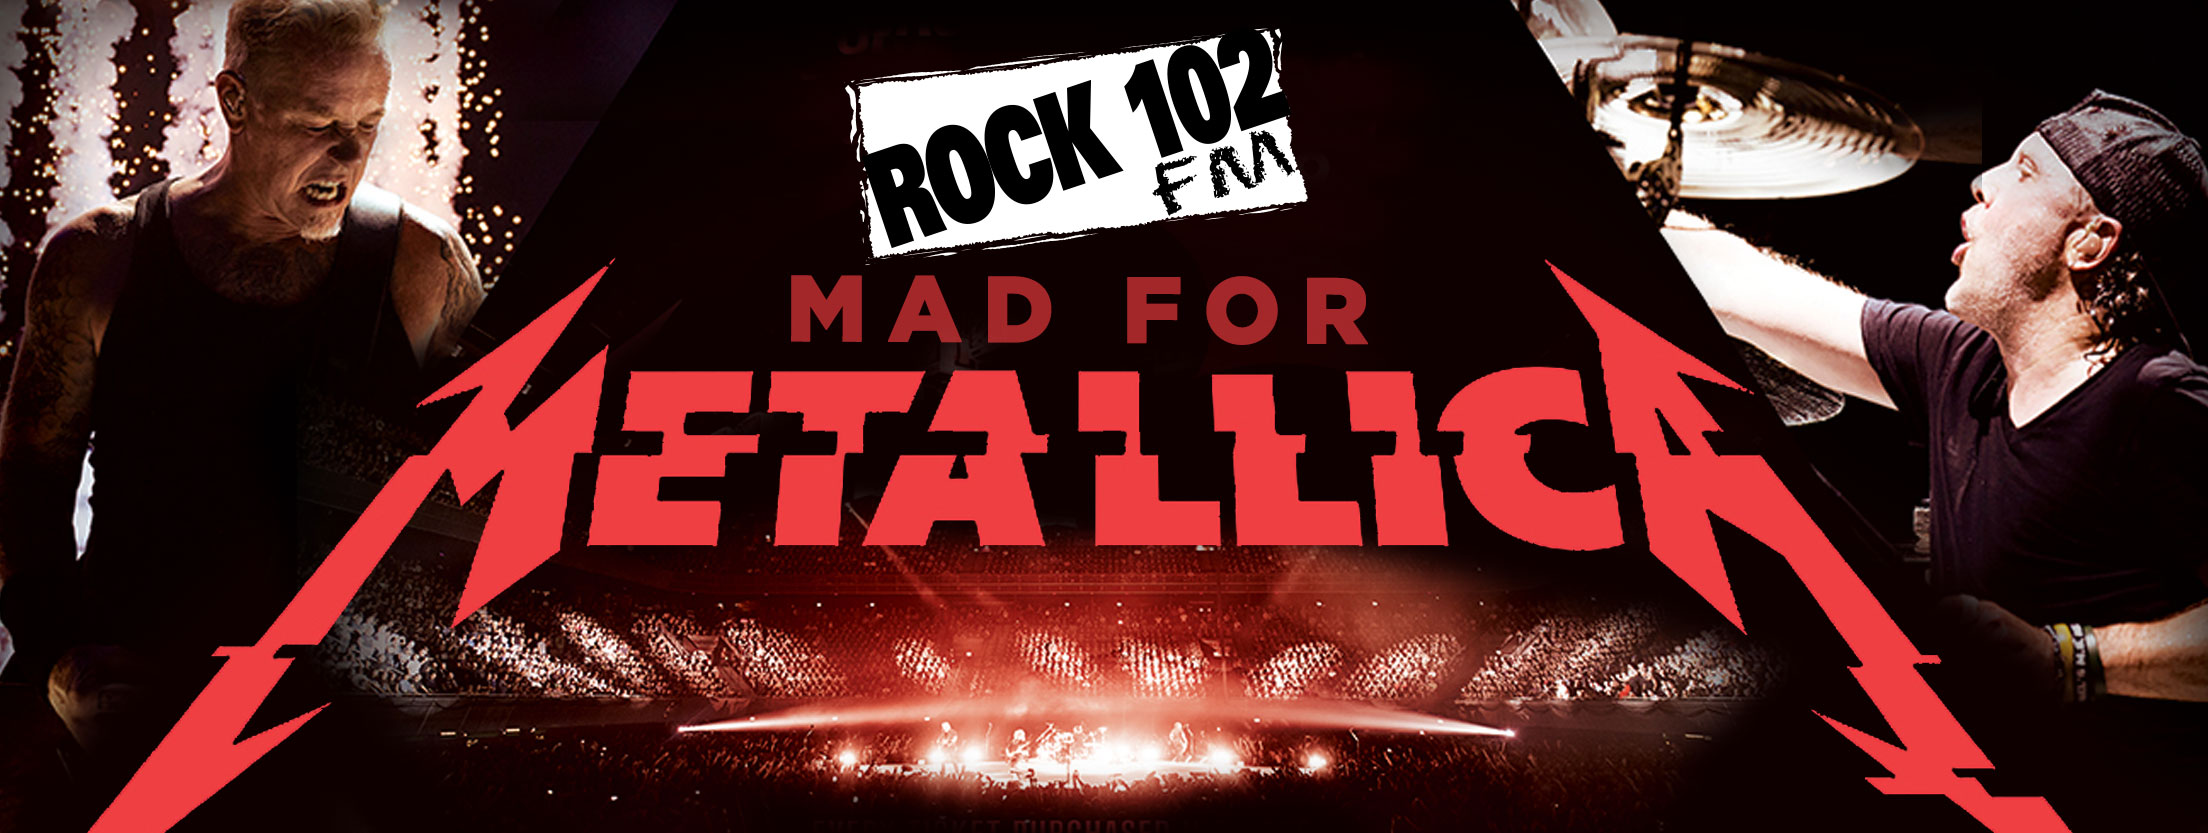 Mad for Metallica